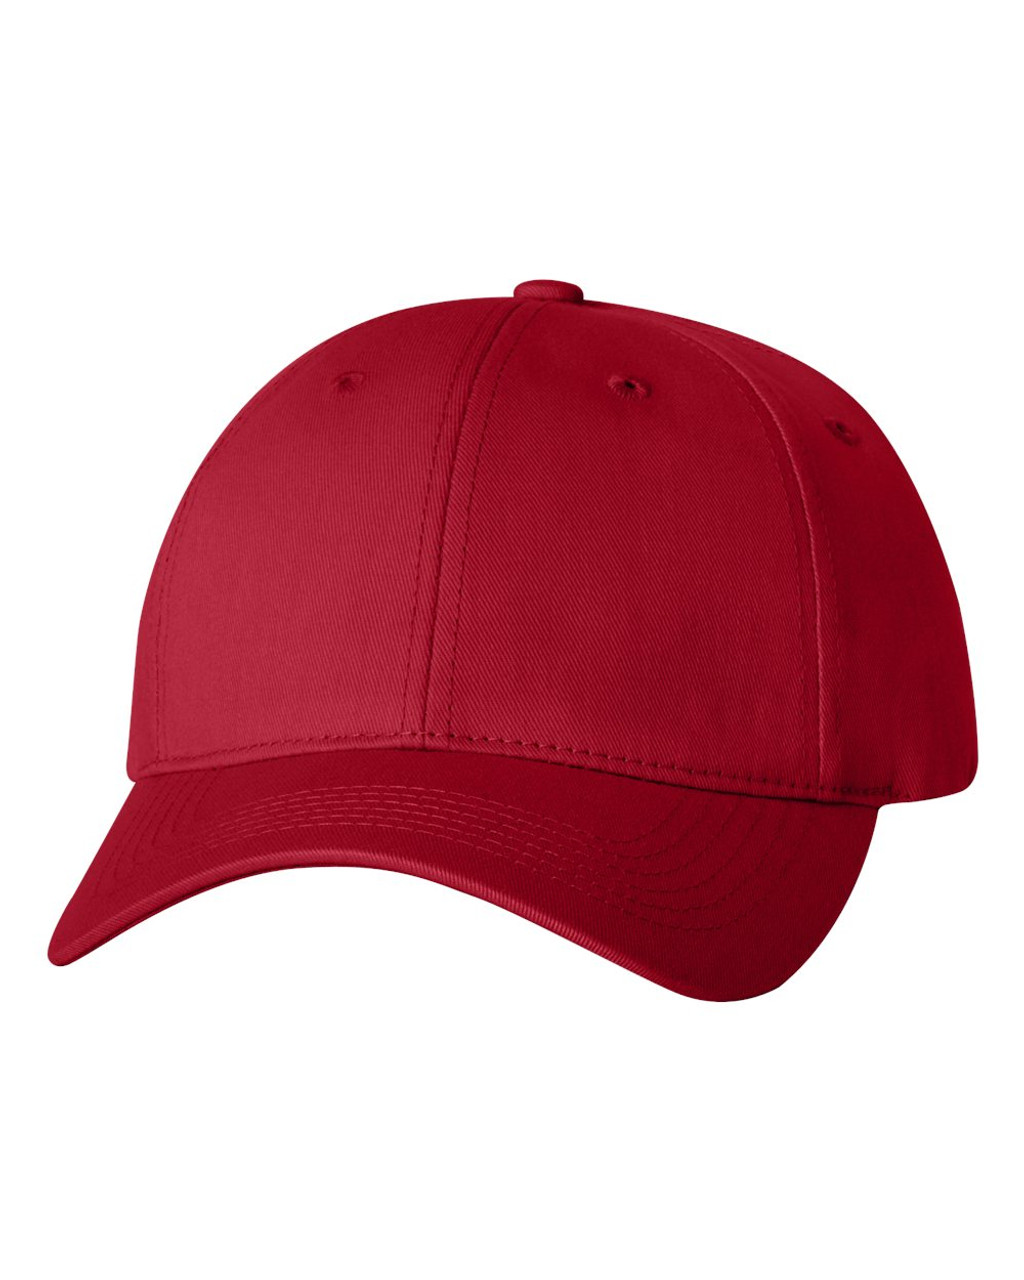 2260 - Twill cap with Velcro Closure by Sportsman in Red